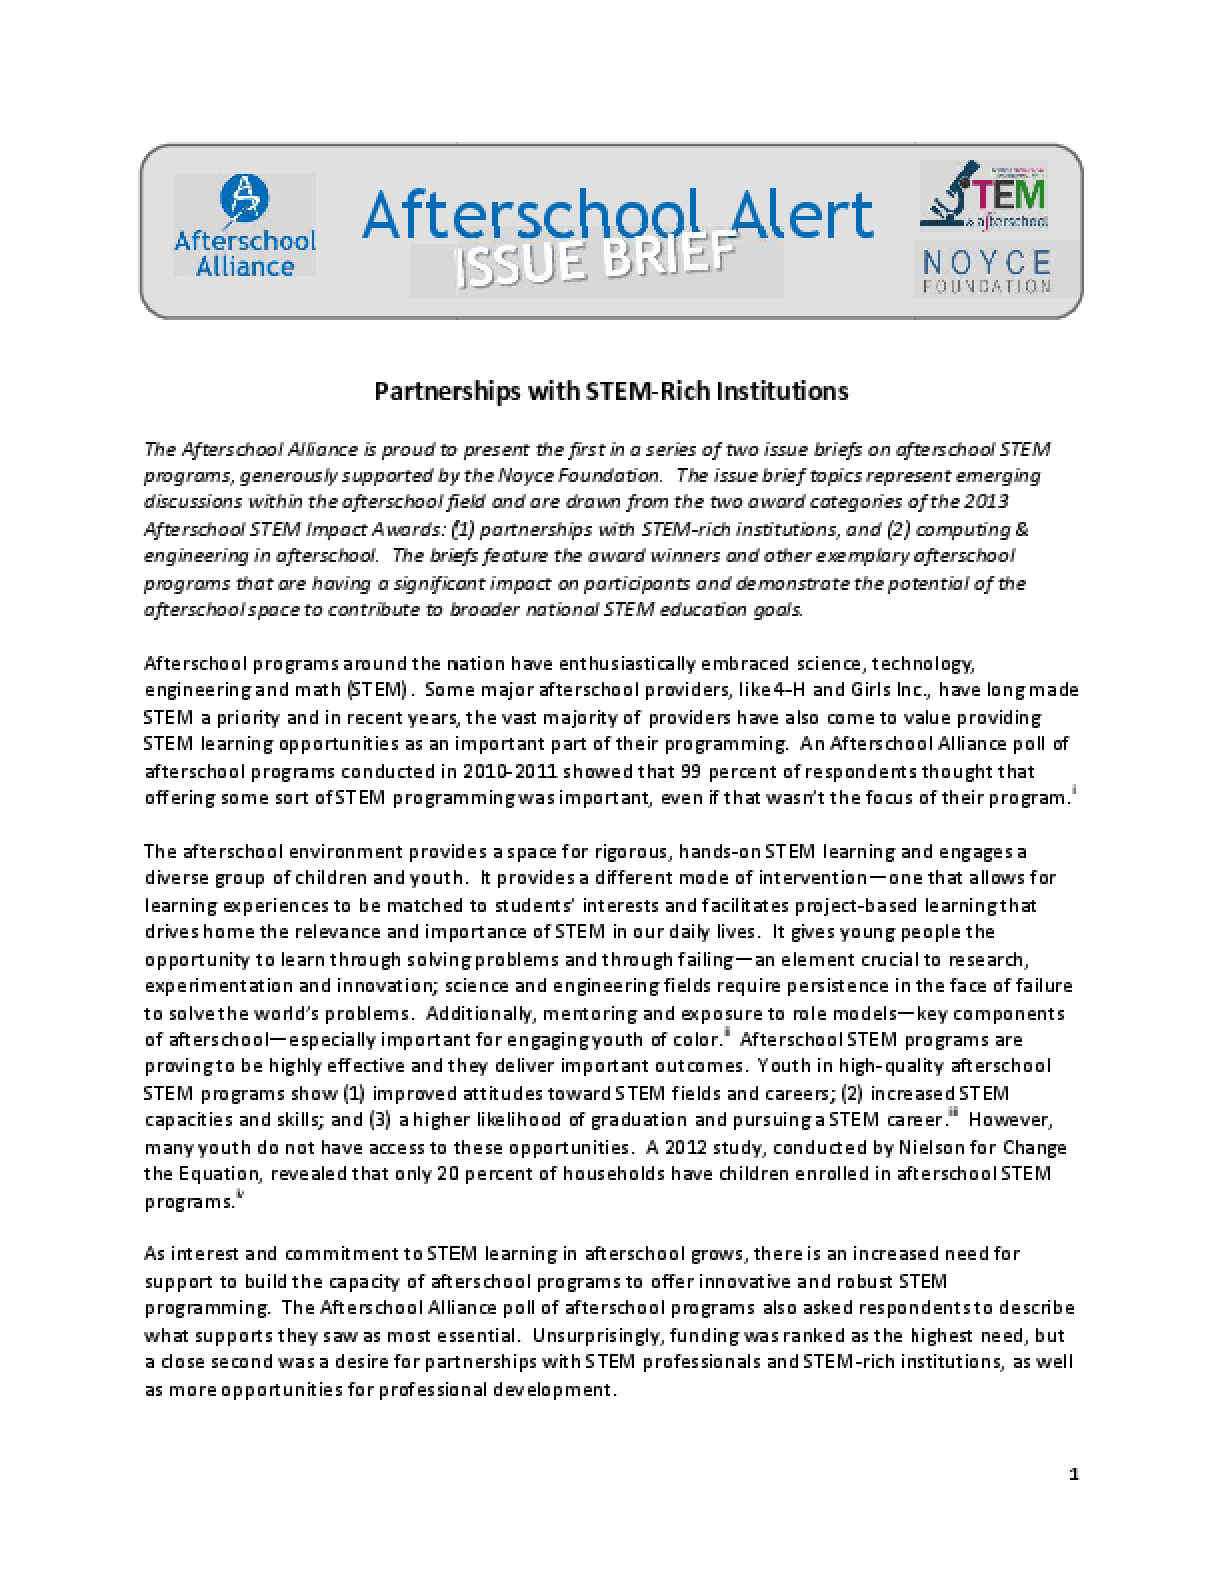 Afterschool Alert: Partnerships with STEM-Rich Institutions